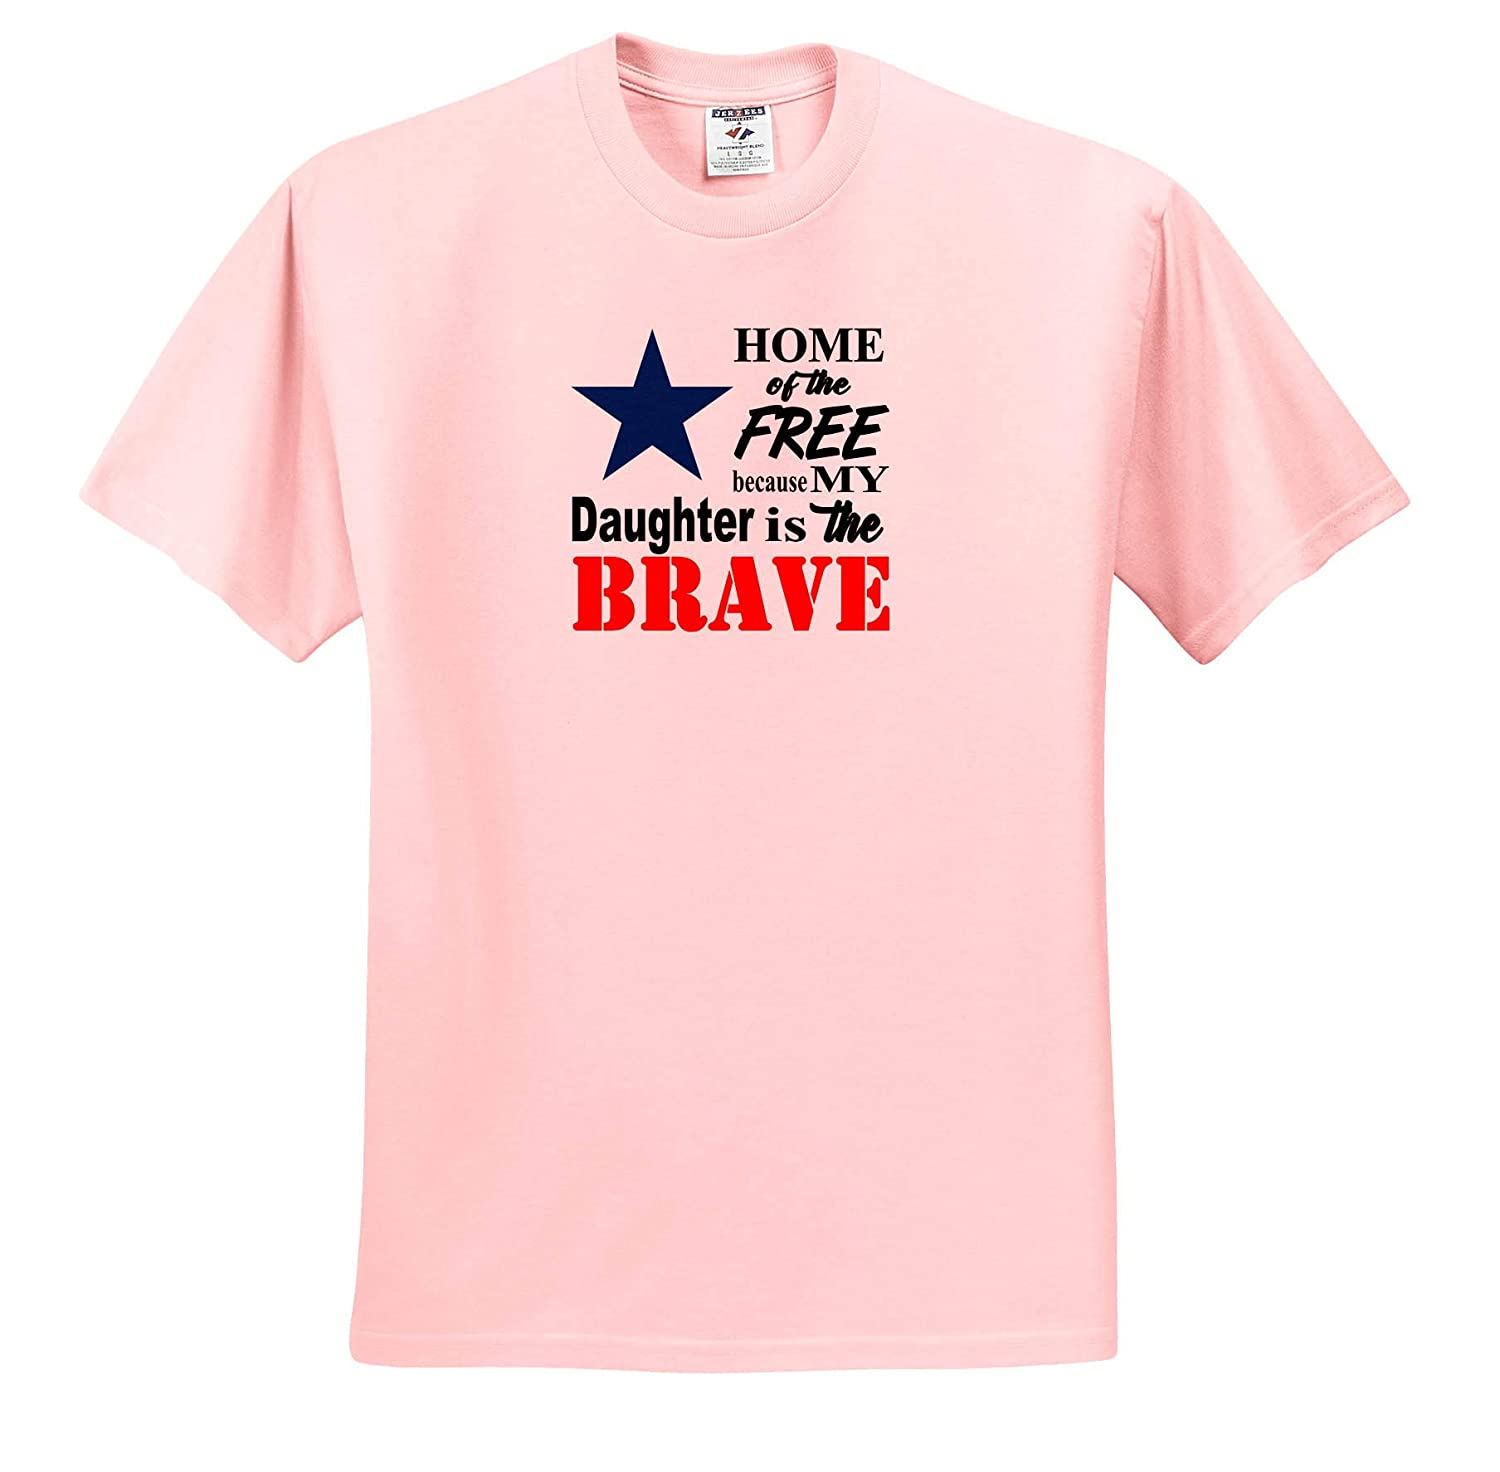 Quotes Home of The Free Because My Daughter is The Brave Quote Adult T-Shirt XL ts/_319911 3dRose Amanda Levermann